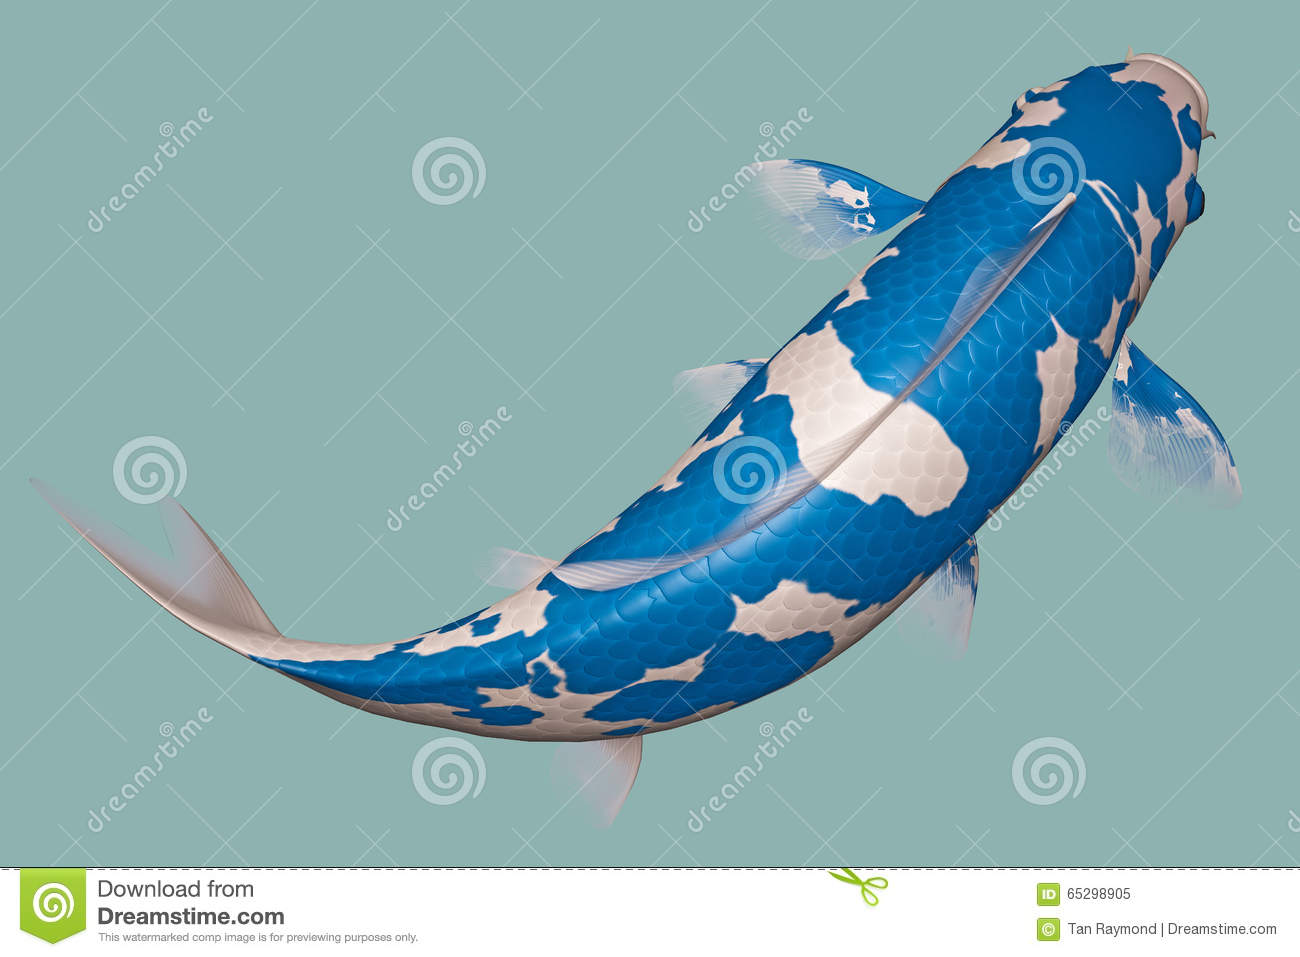 Blue koi fish clipart - photo#17